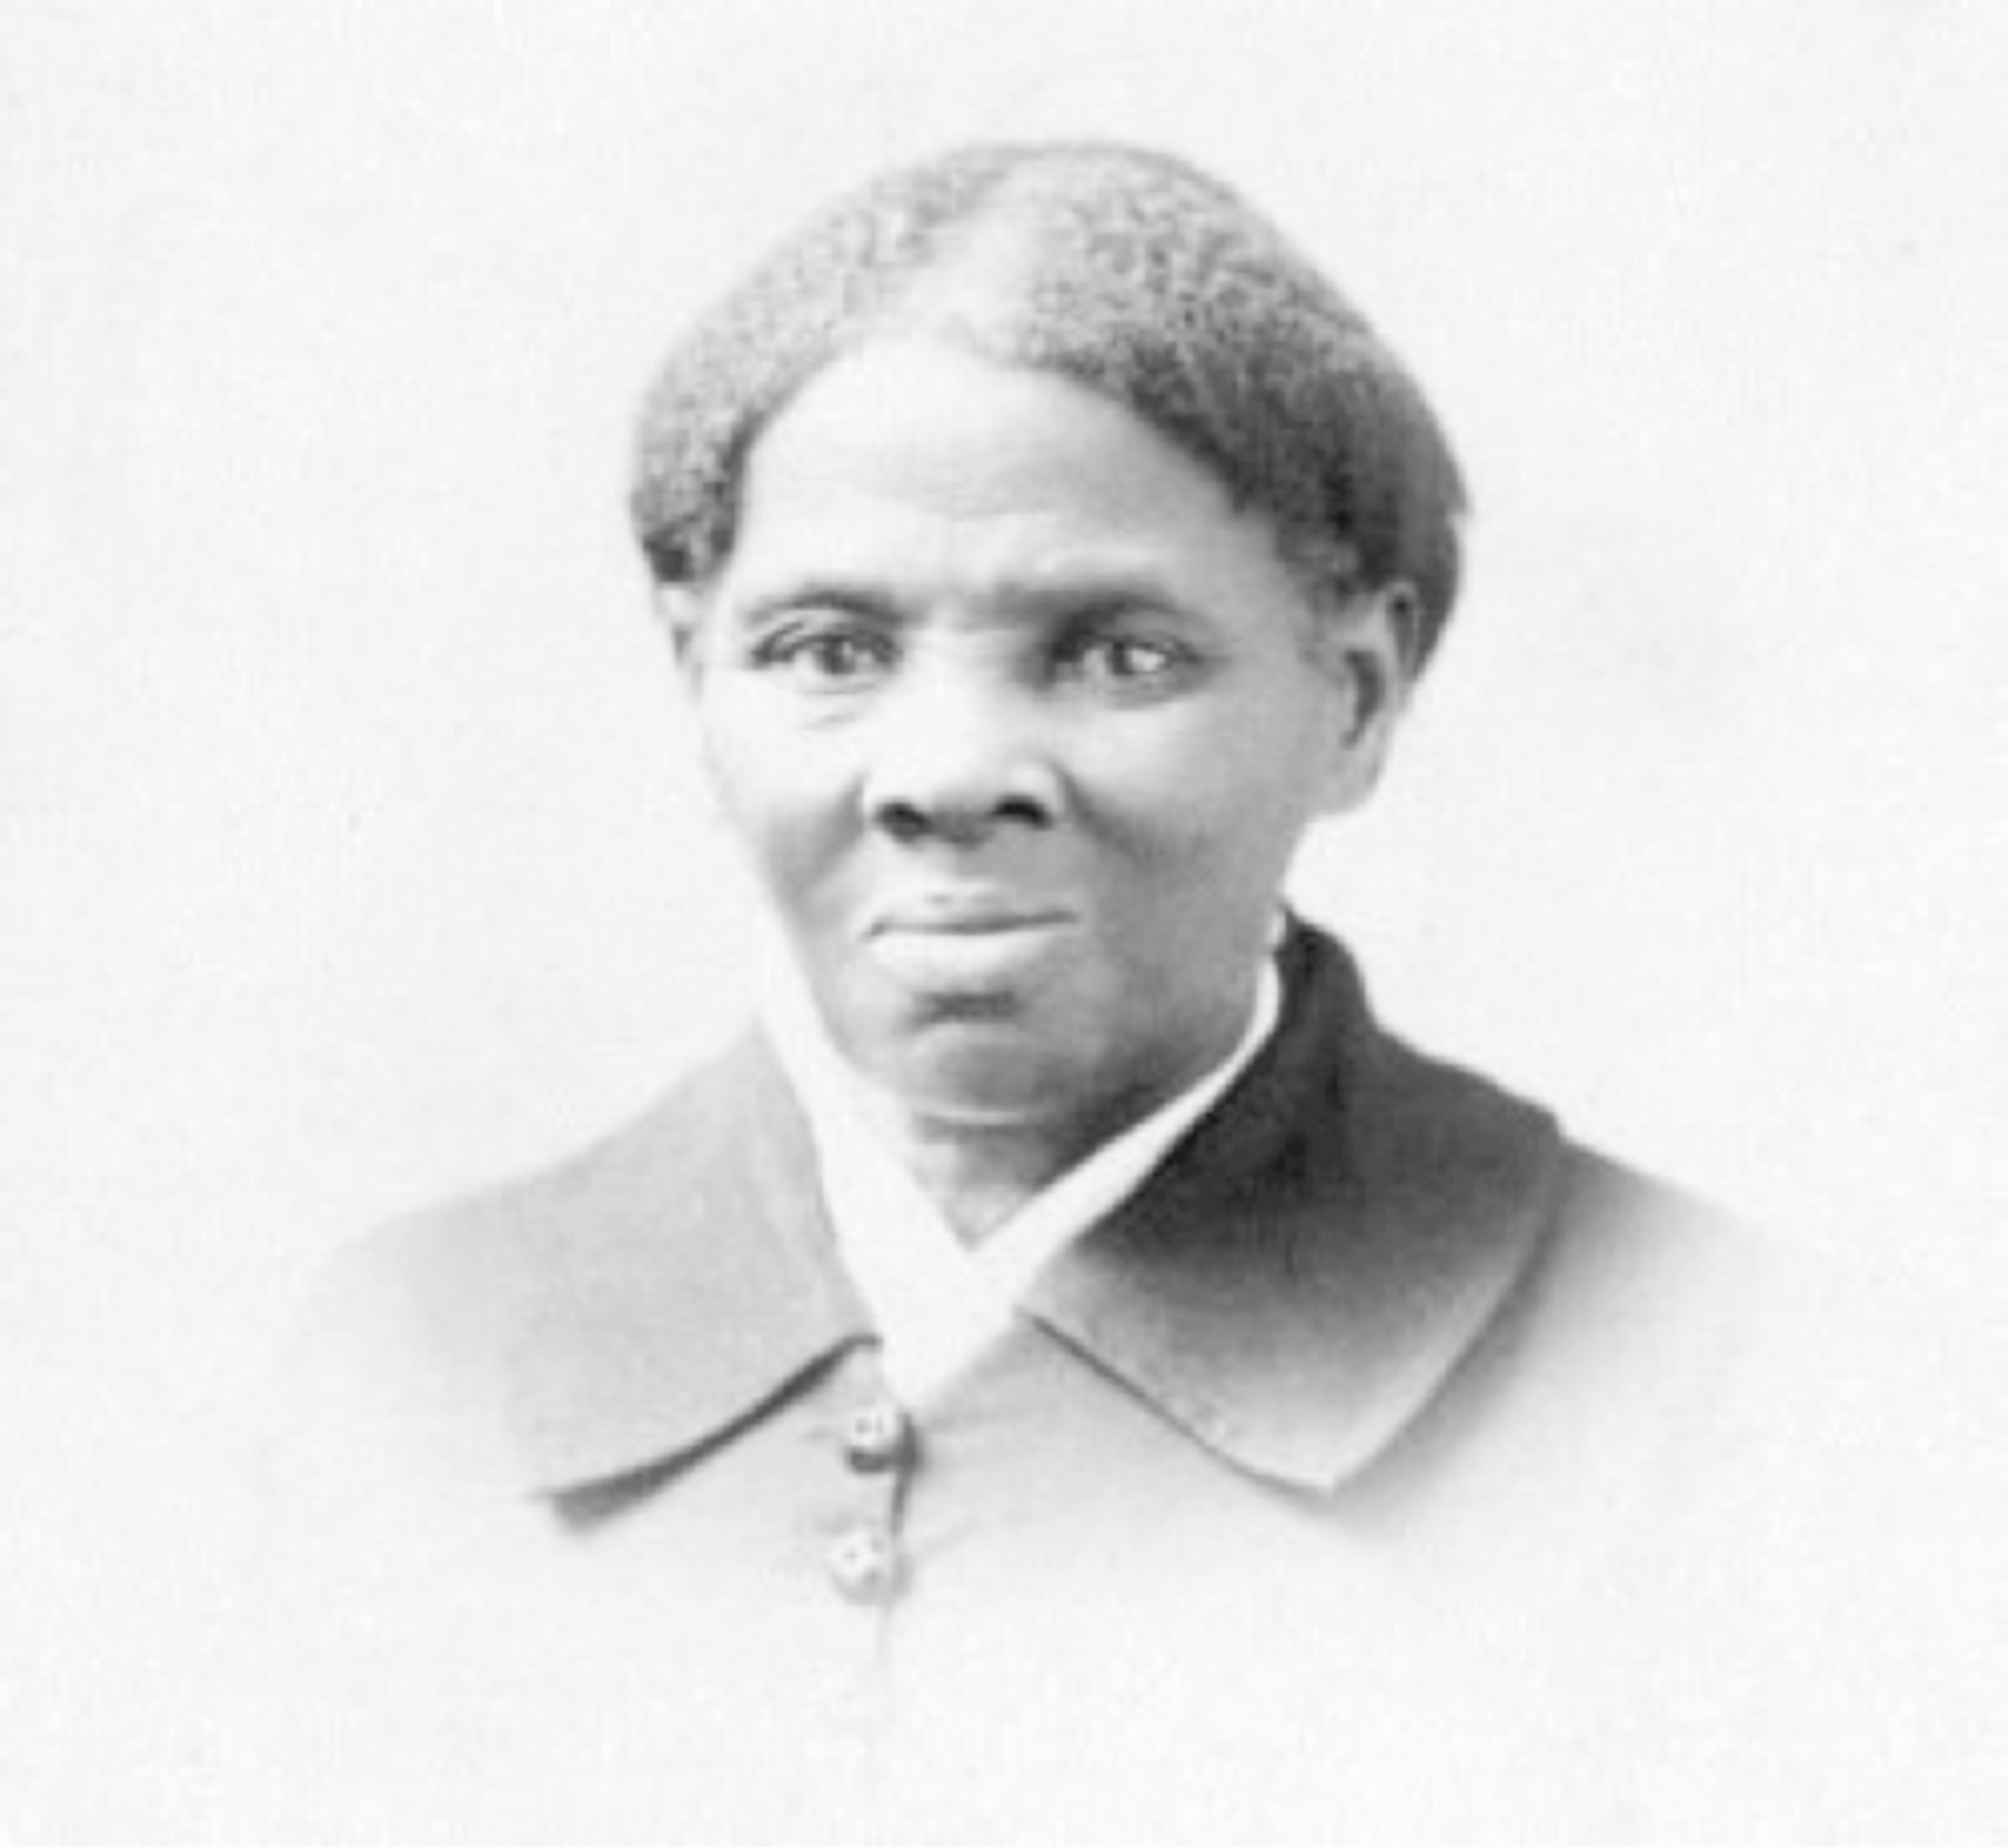 harriett tubman Noun 1 harriet tubman - united states abolitionist born a slave on a plantation in maryland and became a famous conductor on the underground railroad leading other.